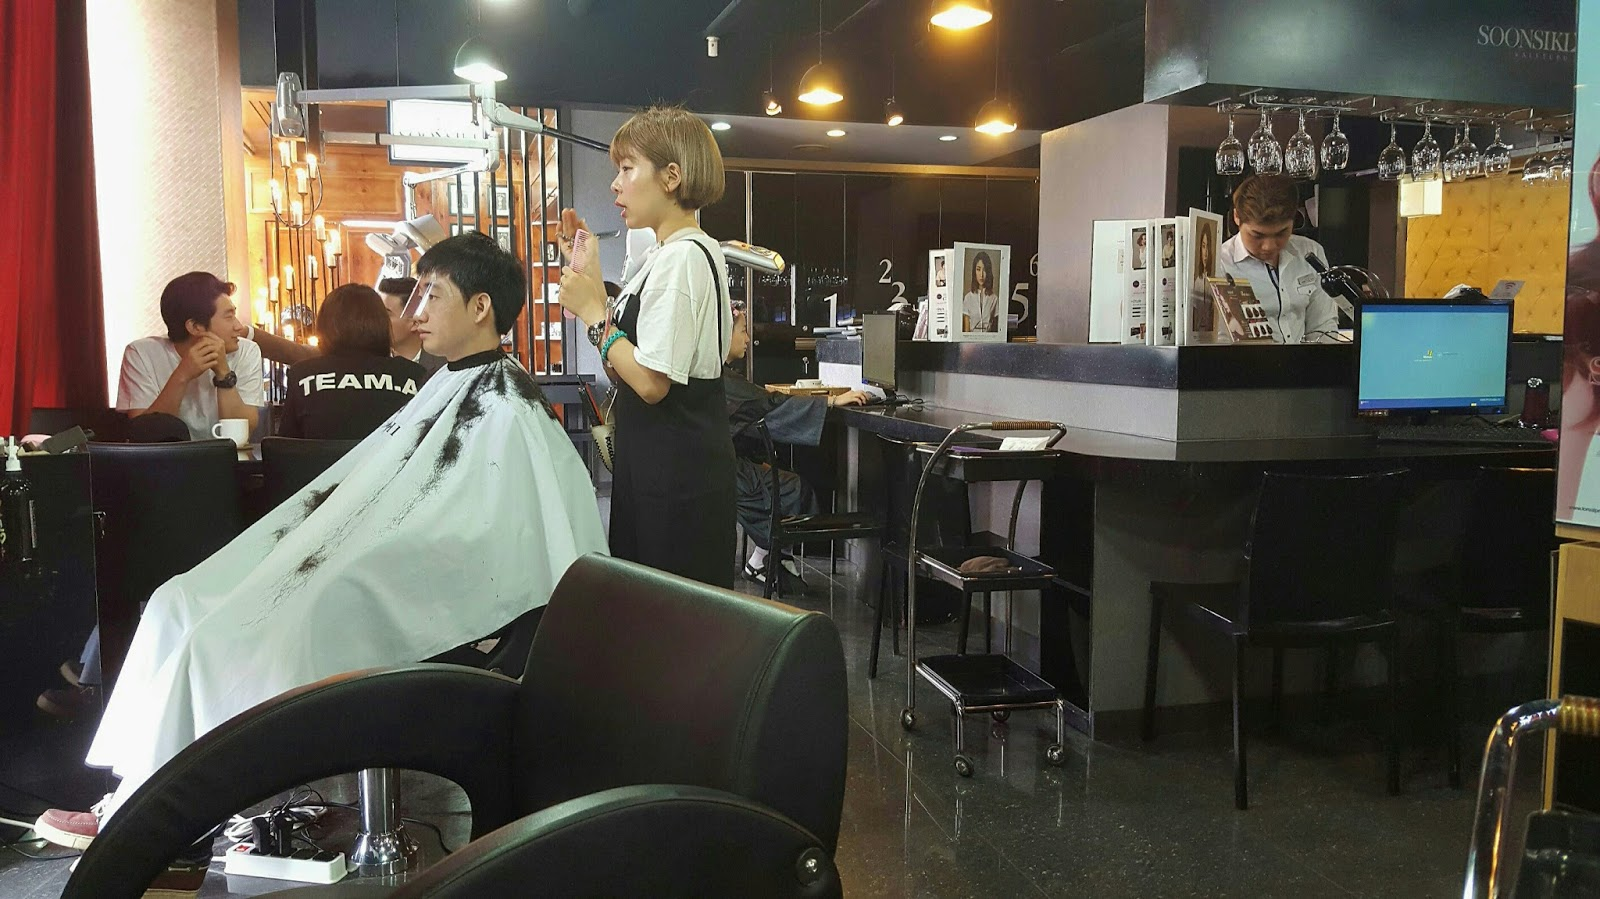 Soonsiki hair a cut above the rest koreabridge for A cut above beauty salon